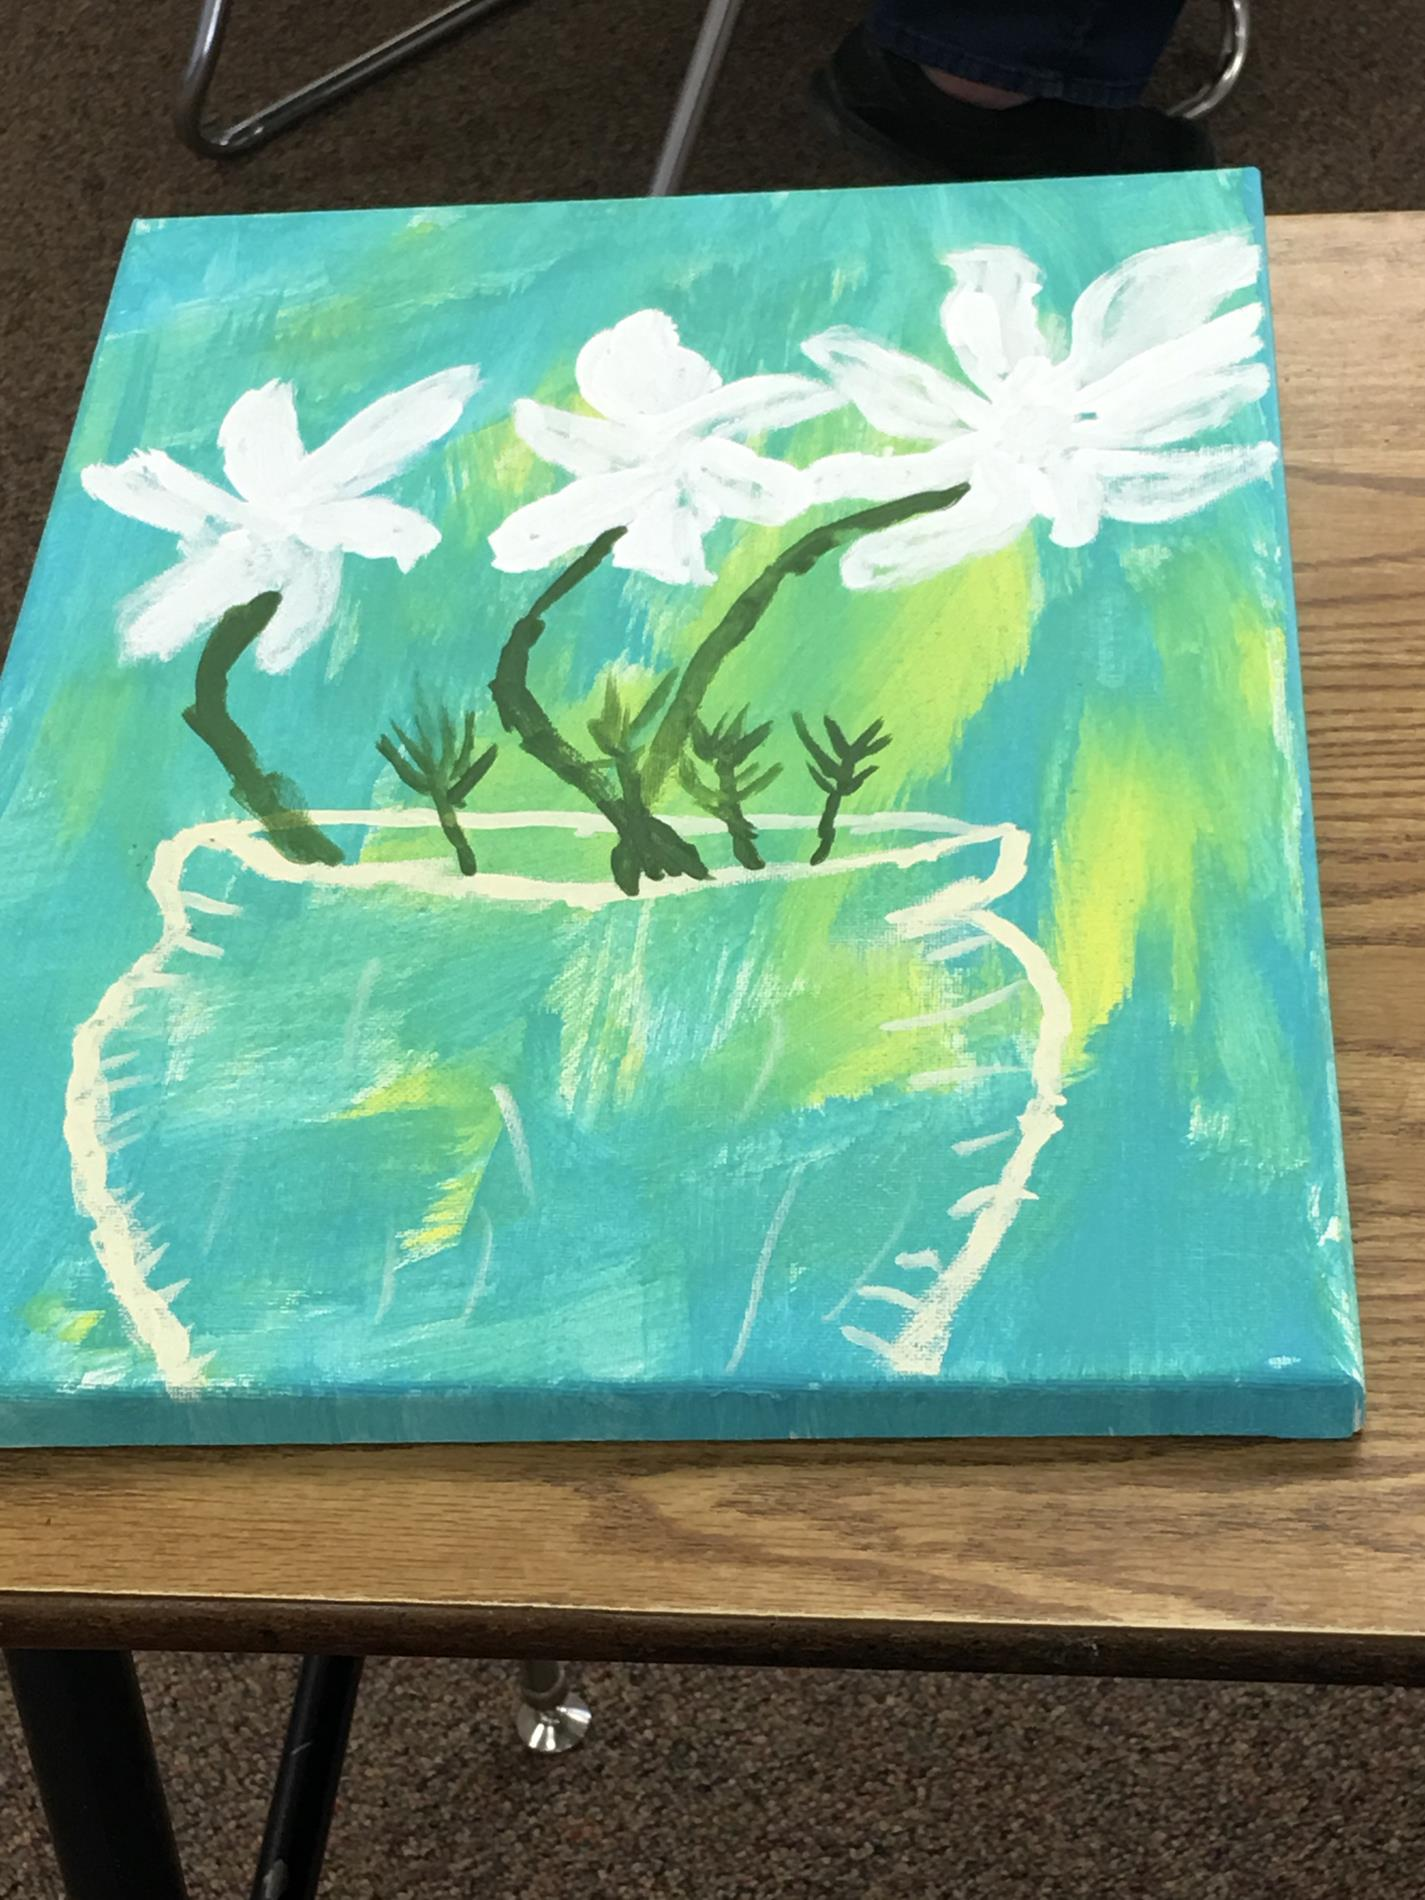 Mrs. Closes class painting flowers in a vase 2018-2019 school year